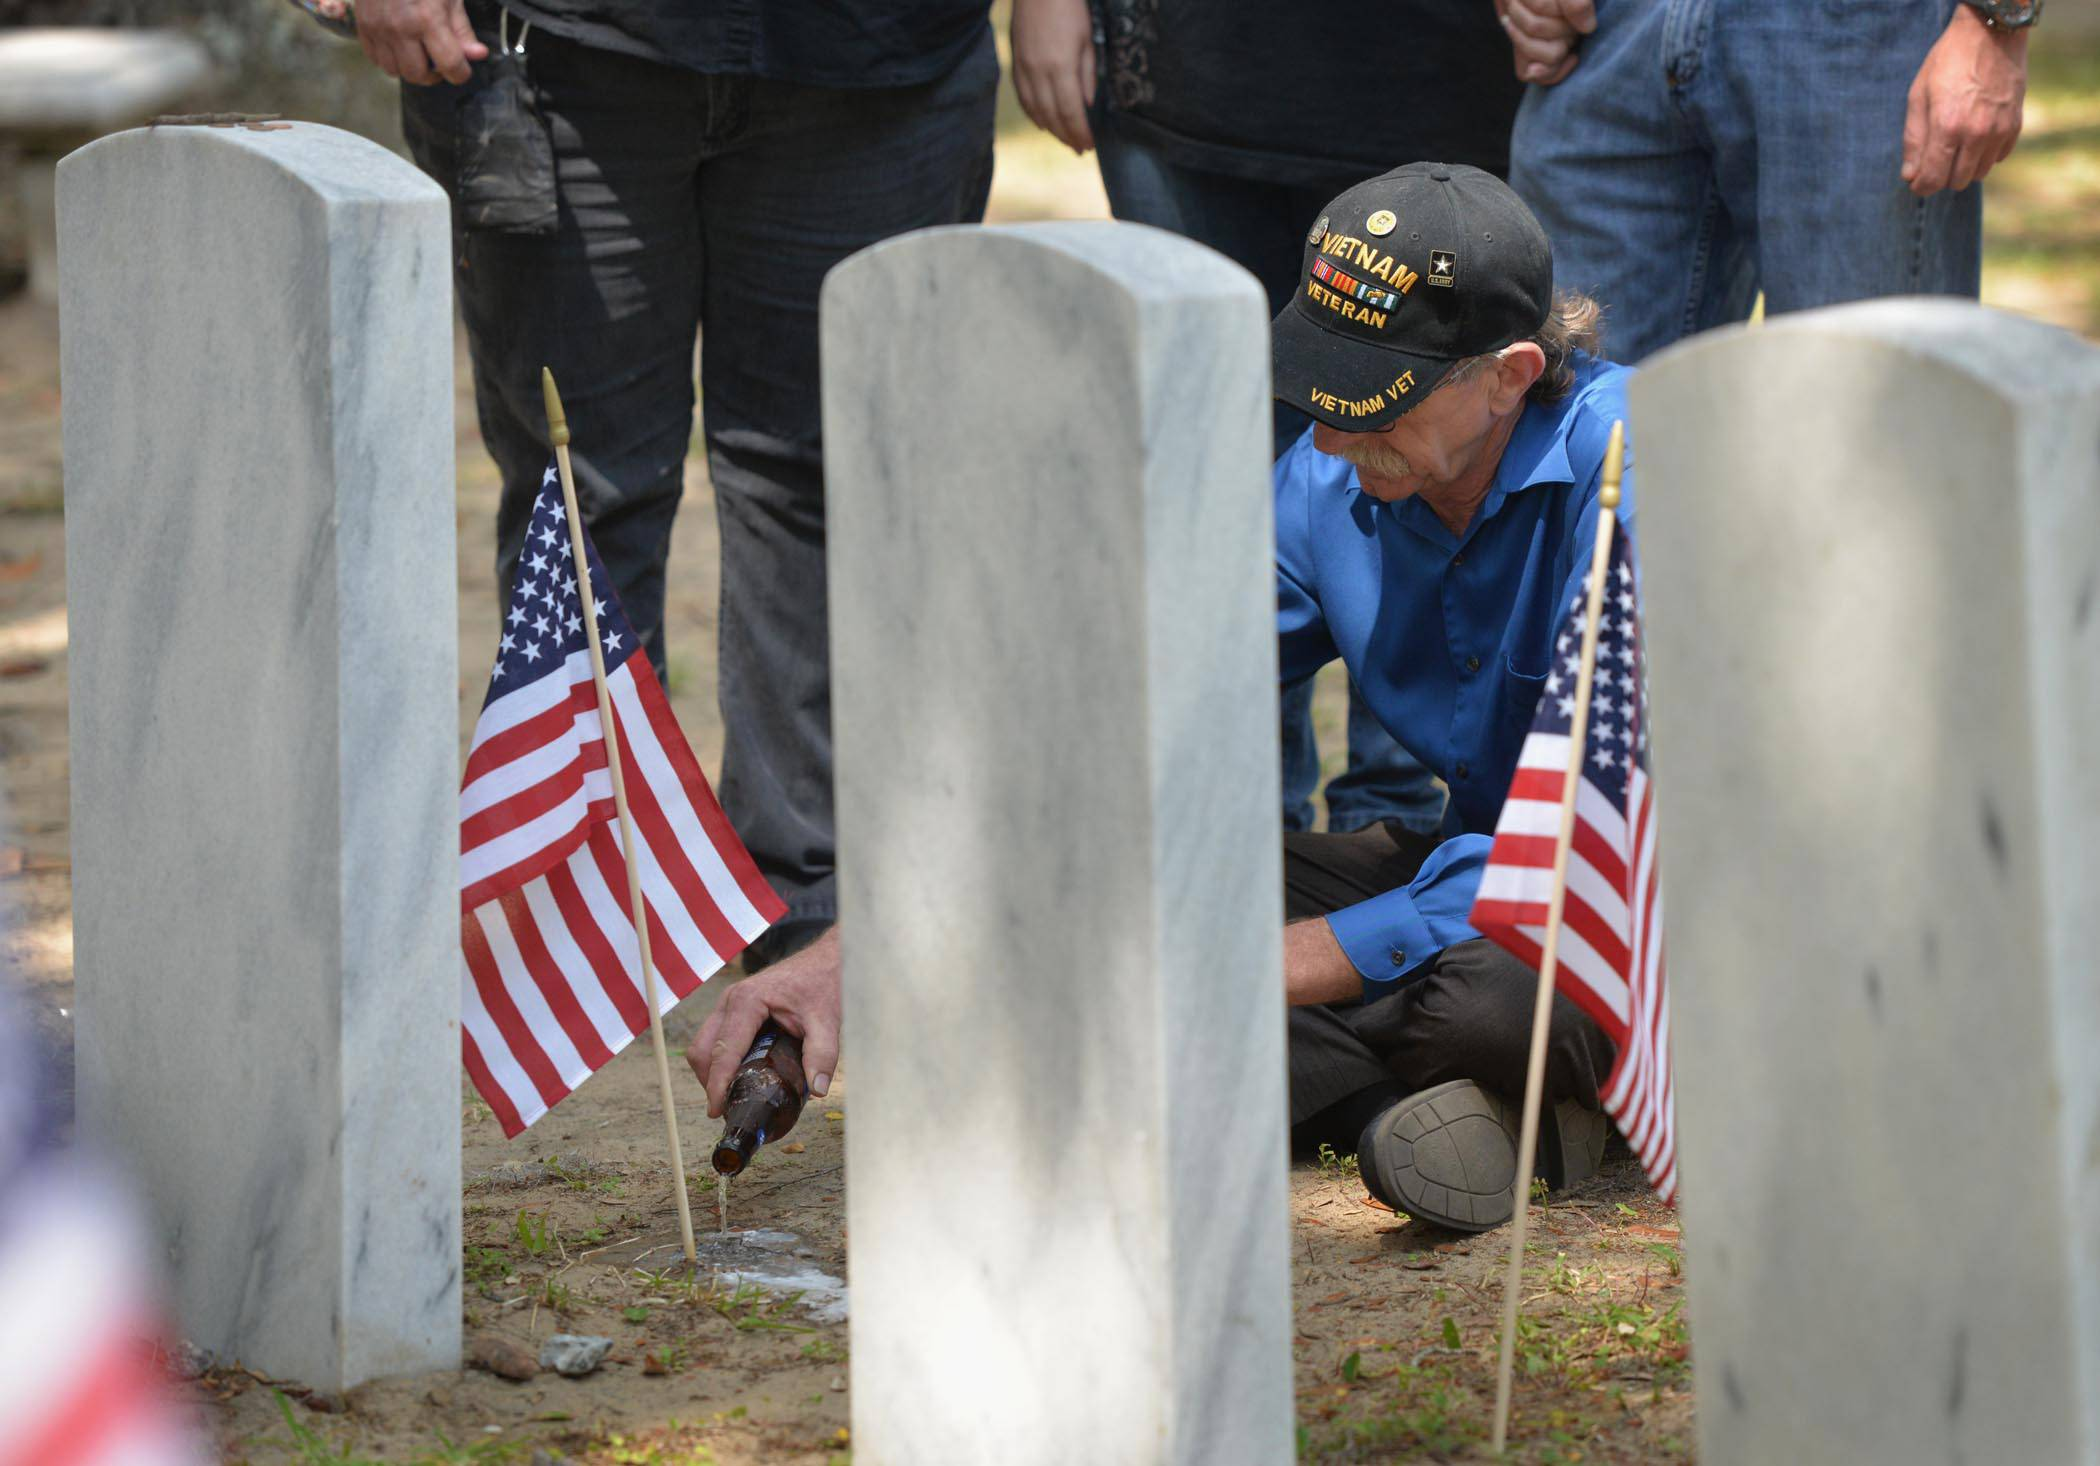 Vietnam veteran John Thomas Sansore of Bloomingdale, Ga., shares a beer with his friend Henry Allen Wheeler following the Memorial Day Ceremony in Bonaventure Cemetery in Savannah, Ga., Monday, May 26, 2014.